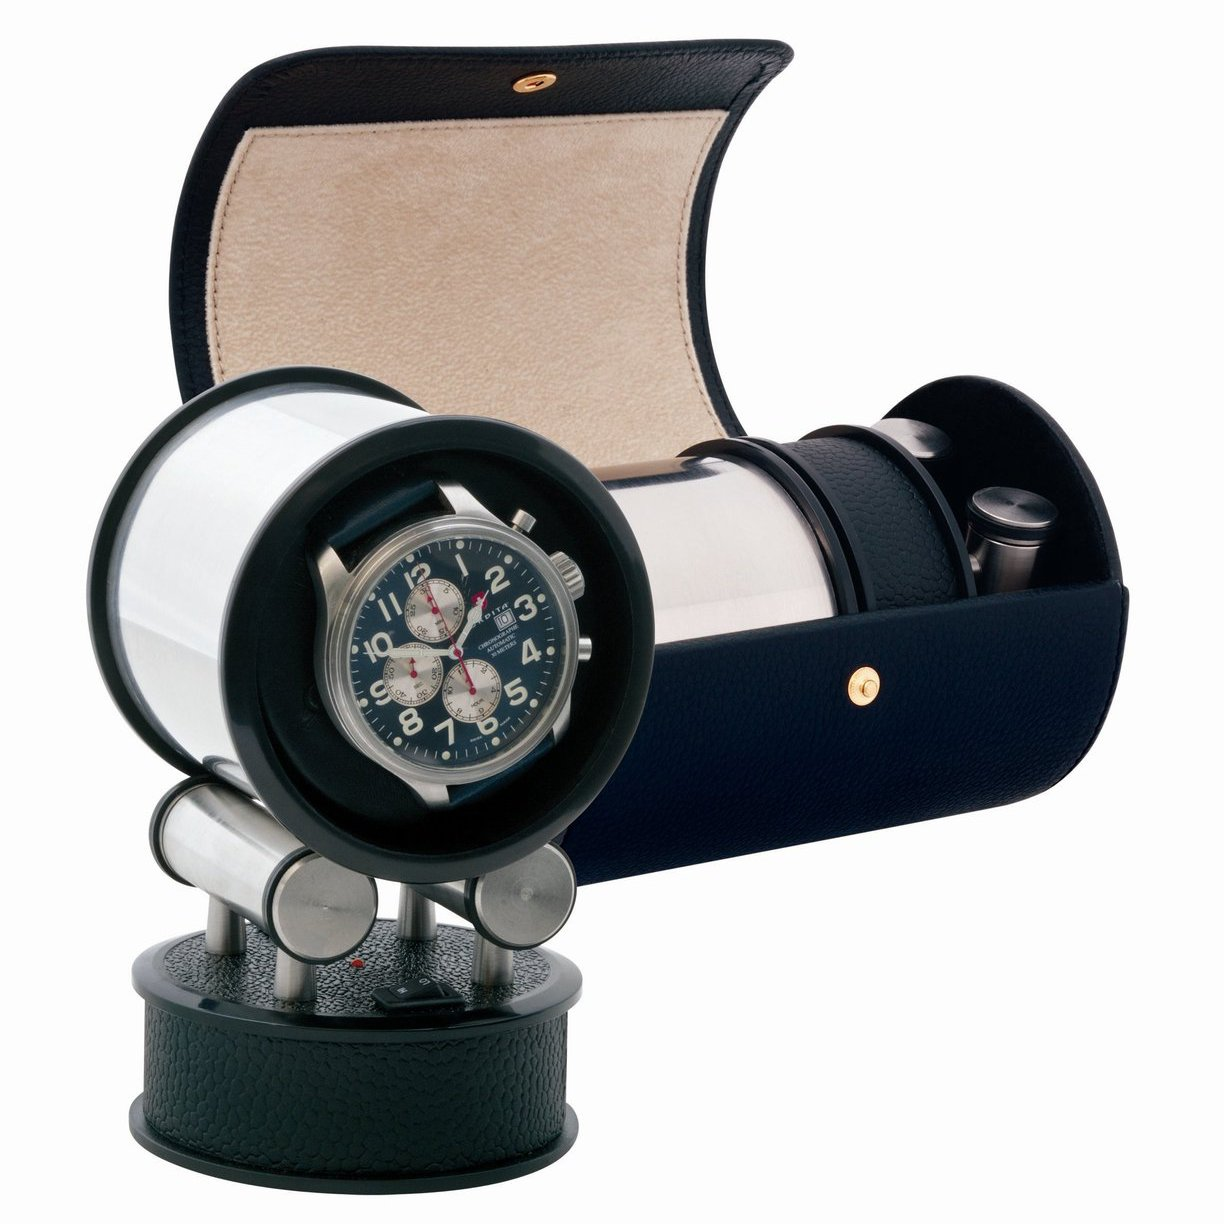 Voyager Black Leather Travel Watch Winder